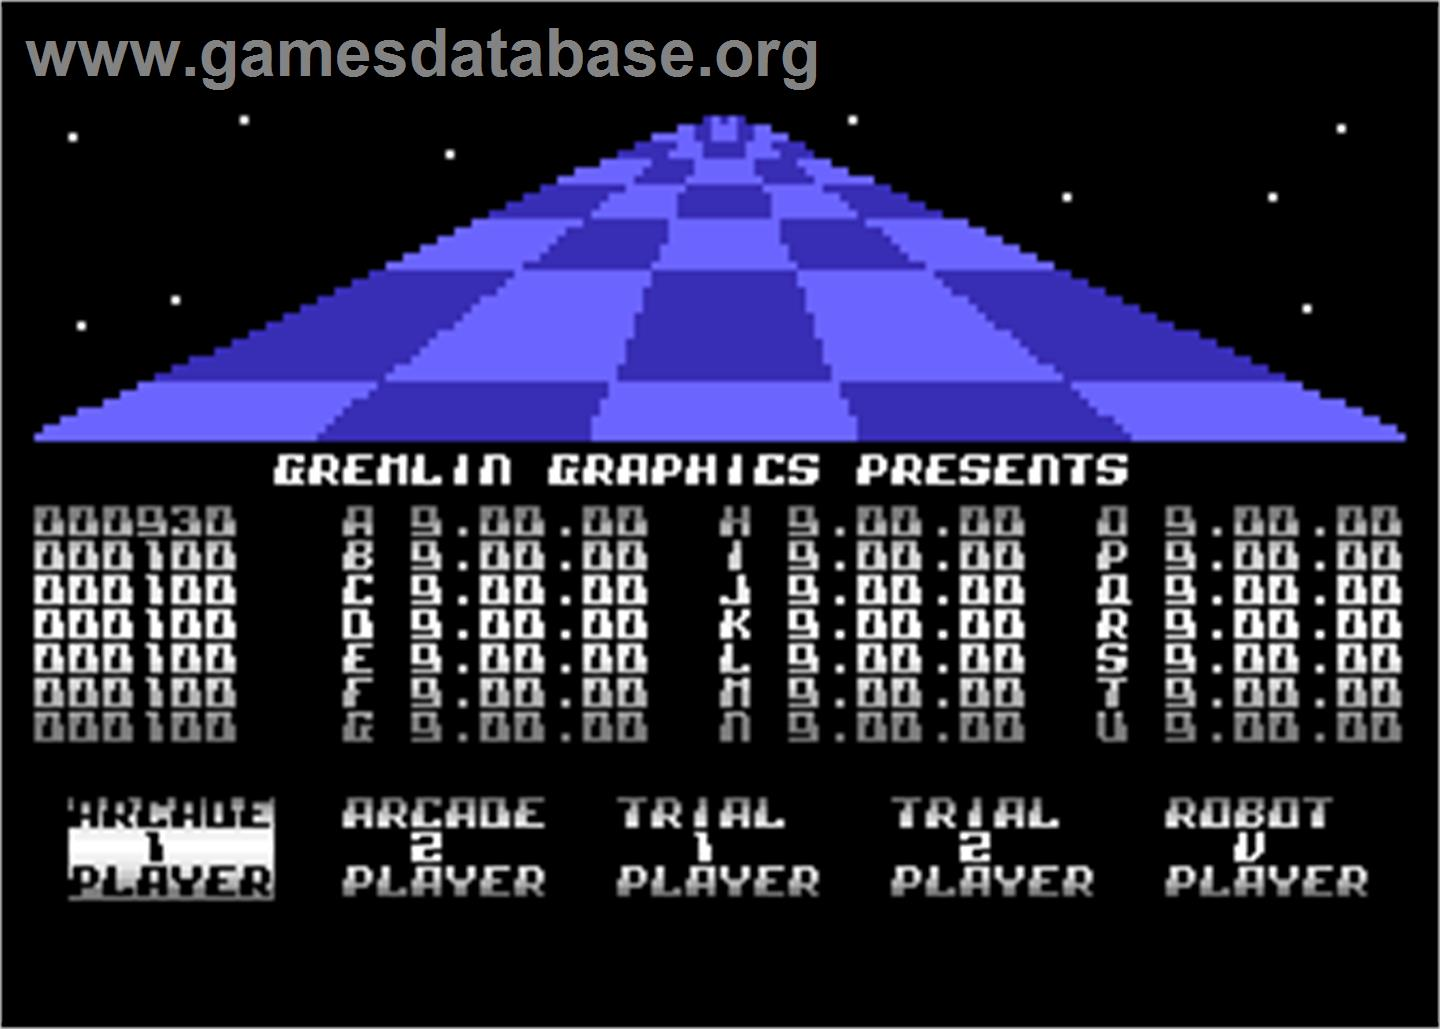 Trail Blazer - Atari 8-bit - Artwork - In Game